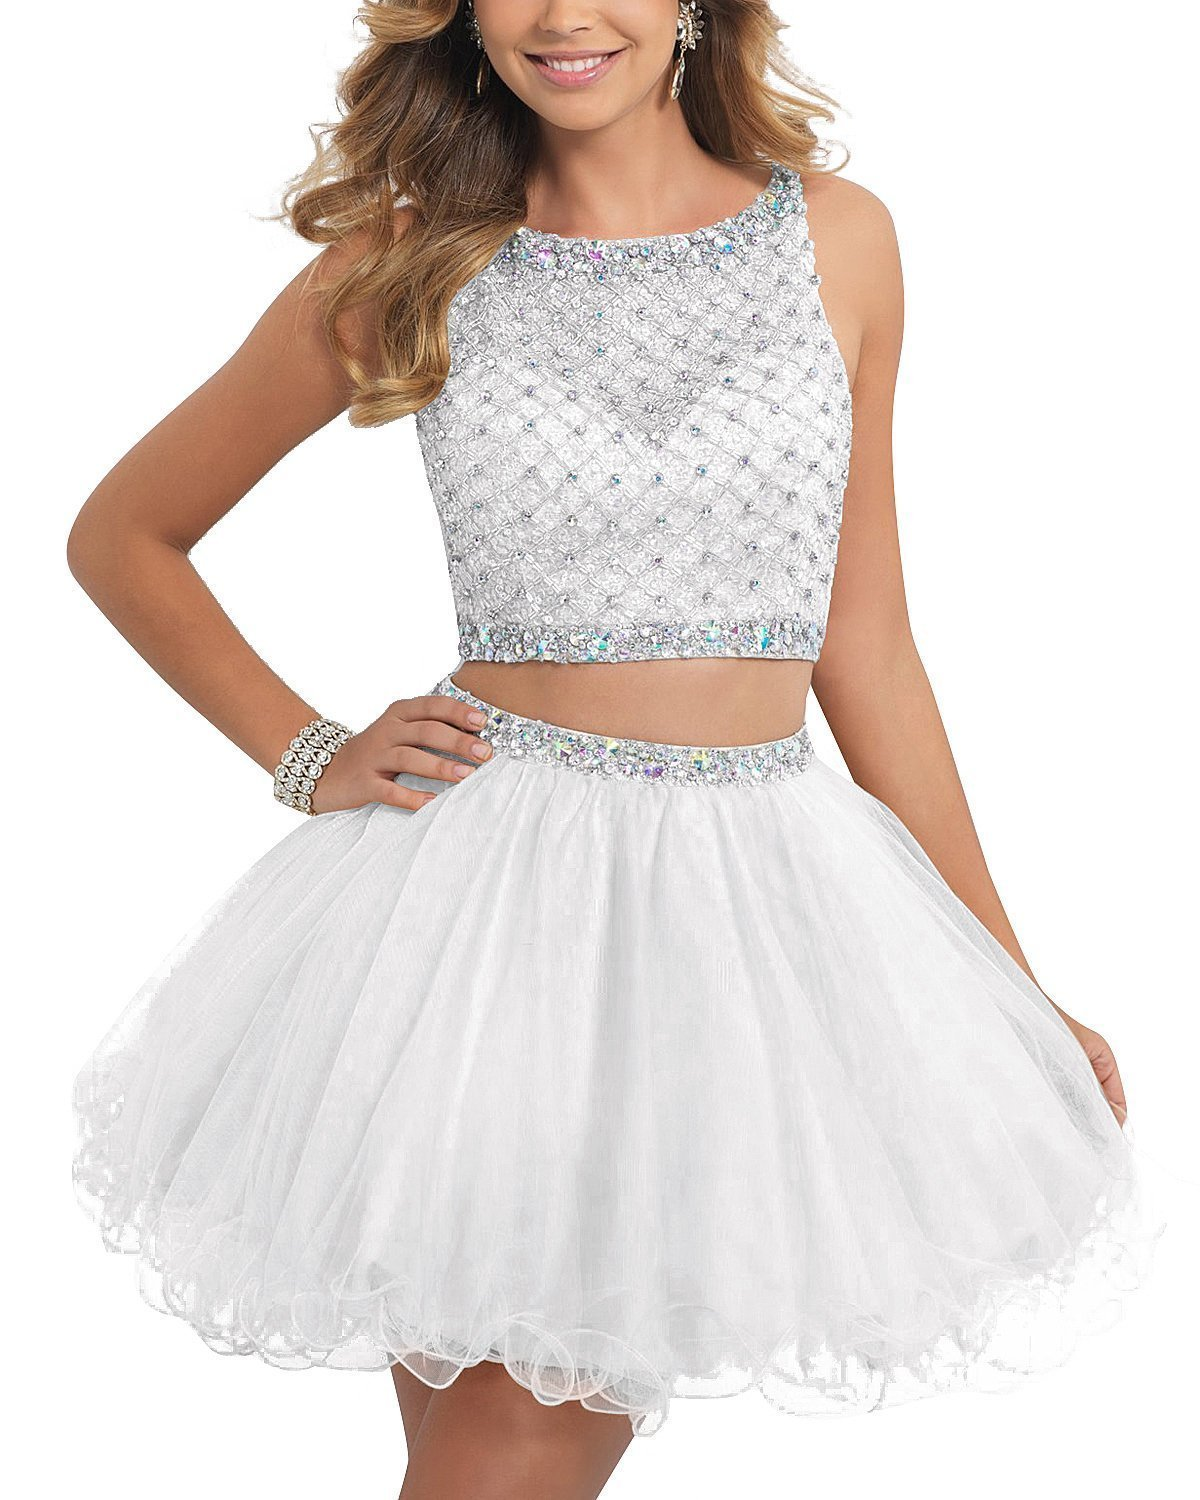 TANGFUTI Two Piece Homecoming Dresses Short Beaded Tulle Formal Prom Gowns 010 White US16